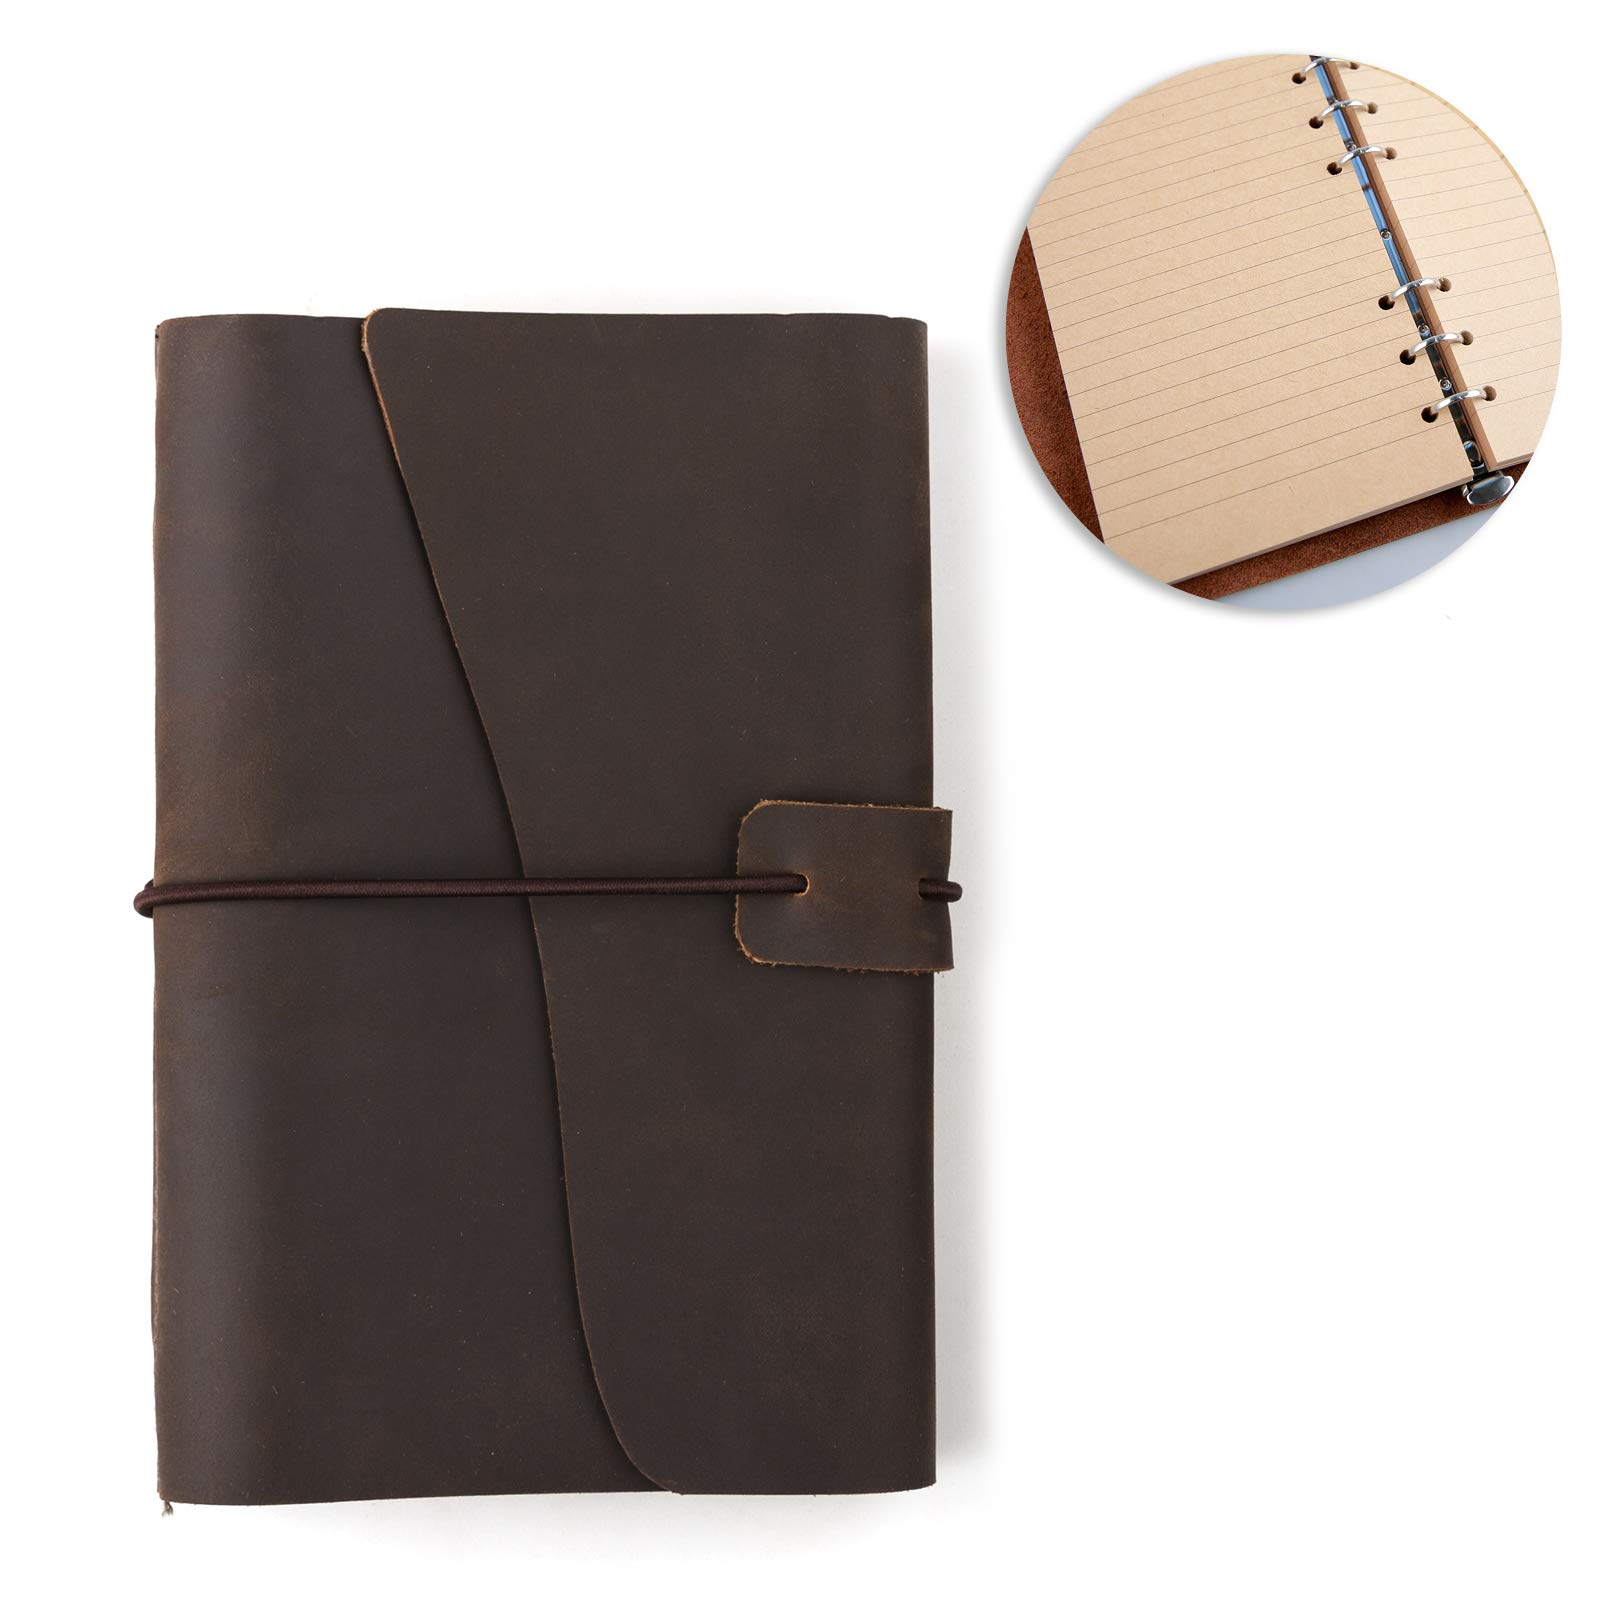 Leather Journal Refillable Notebook Writing Bound Diary Unlined Paper 160P 7x5''